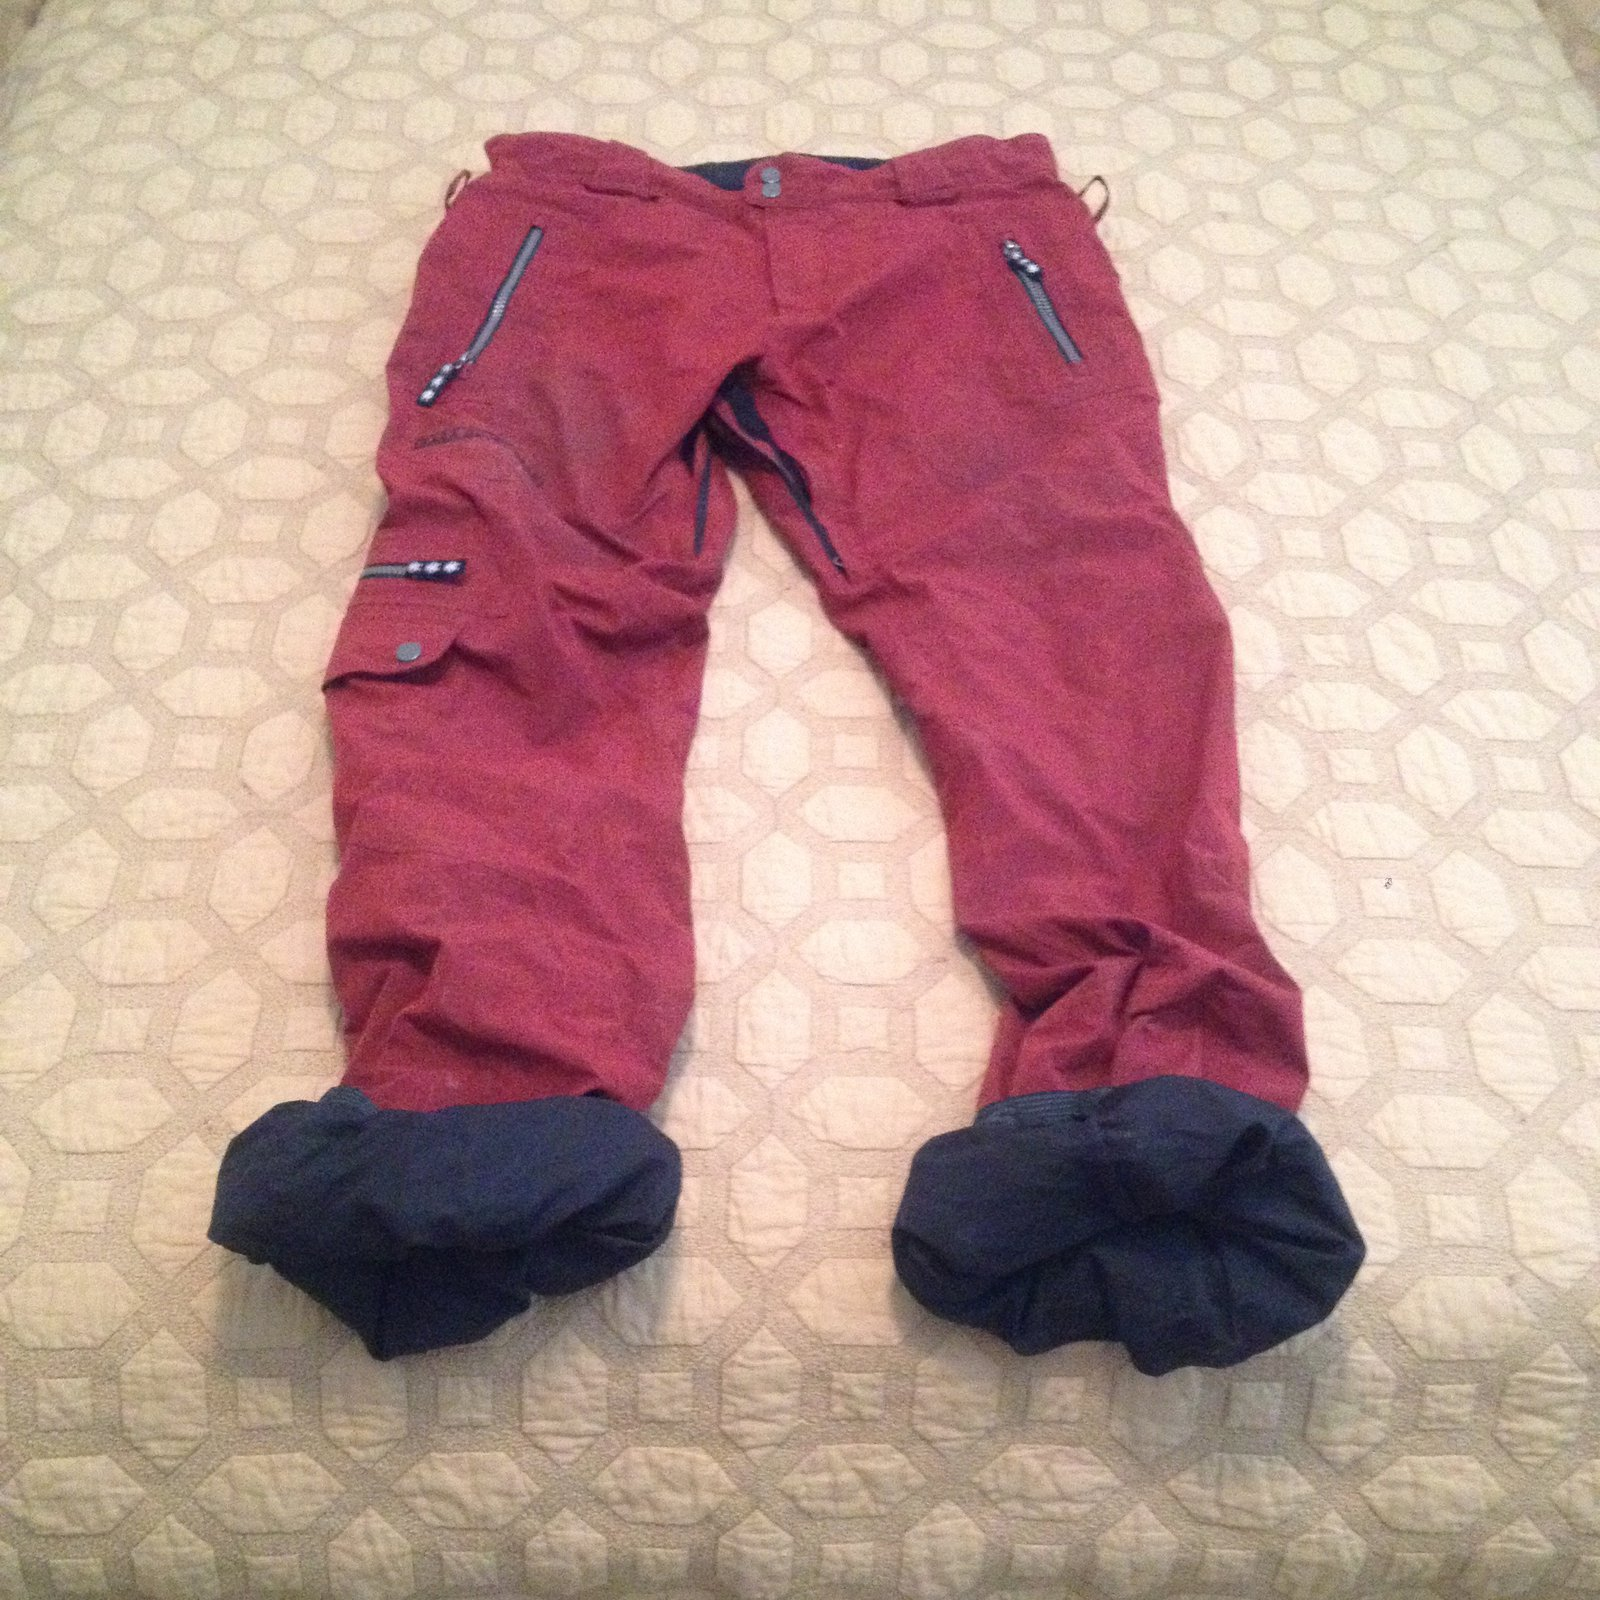 XL Fatigue pants 2